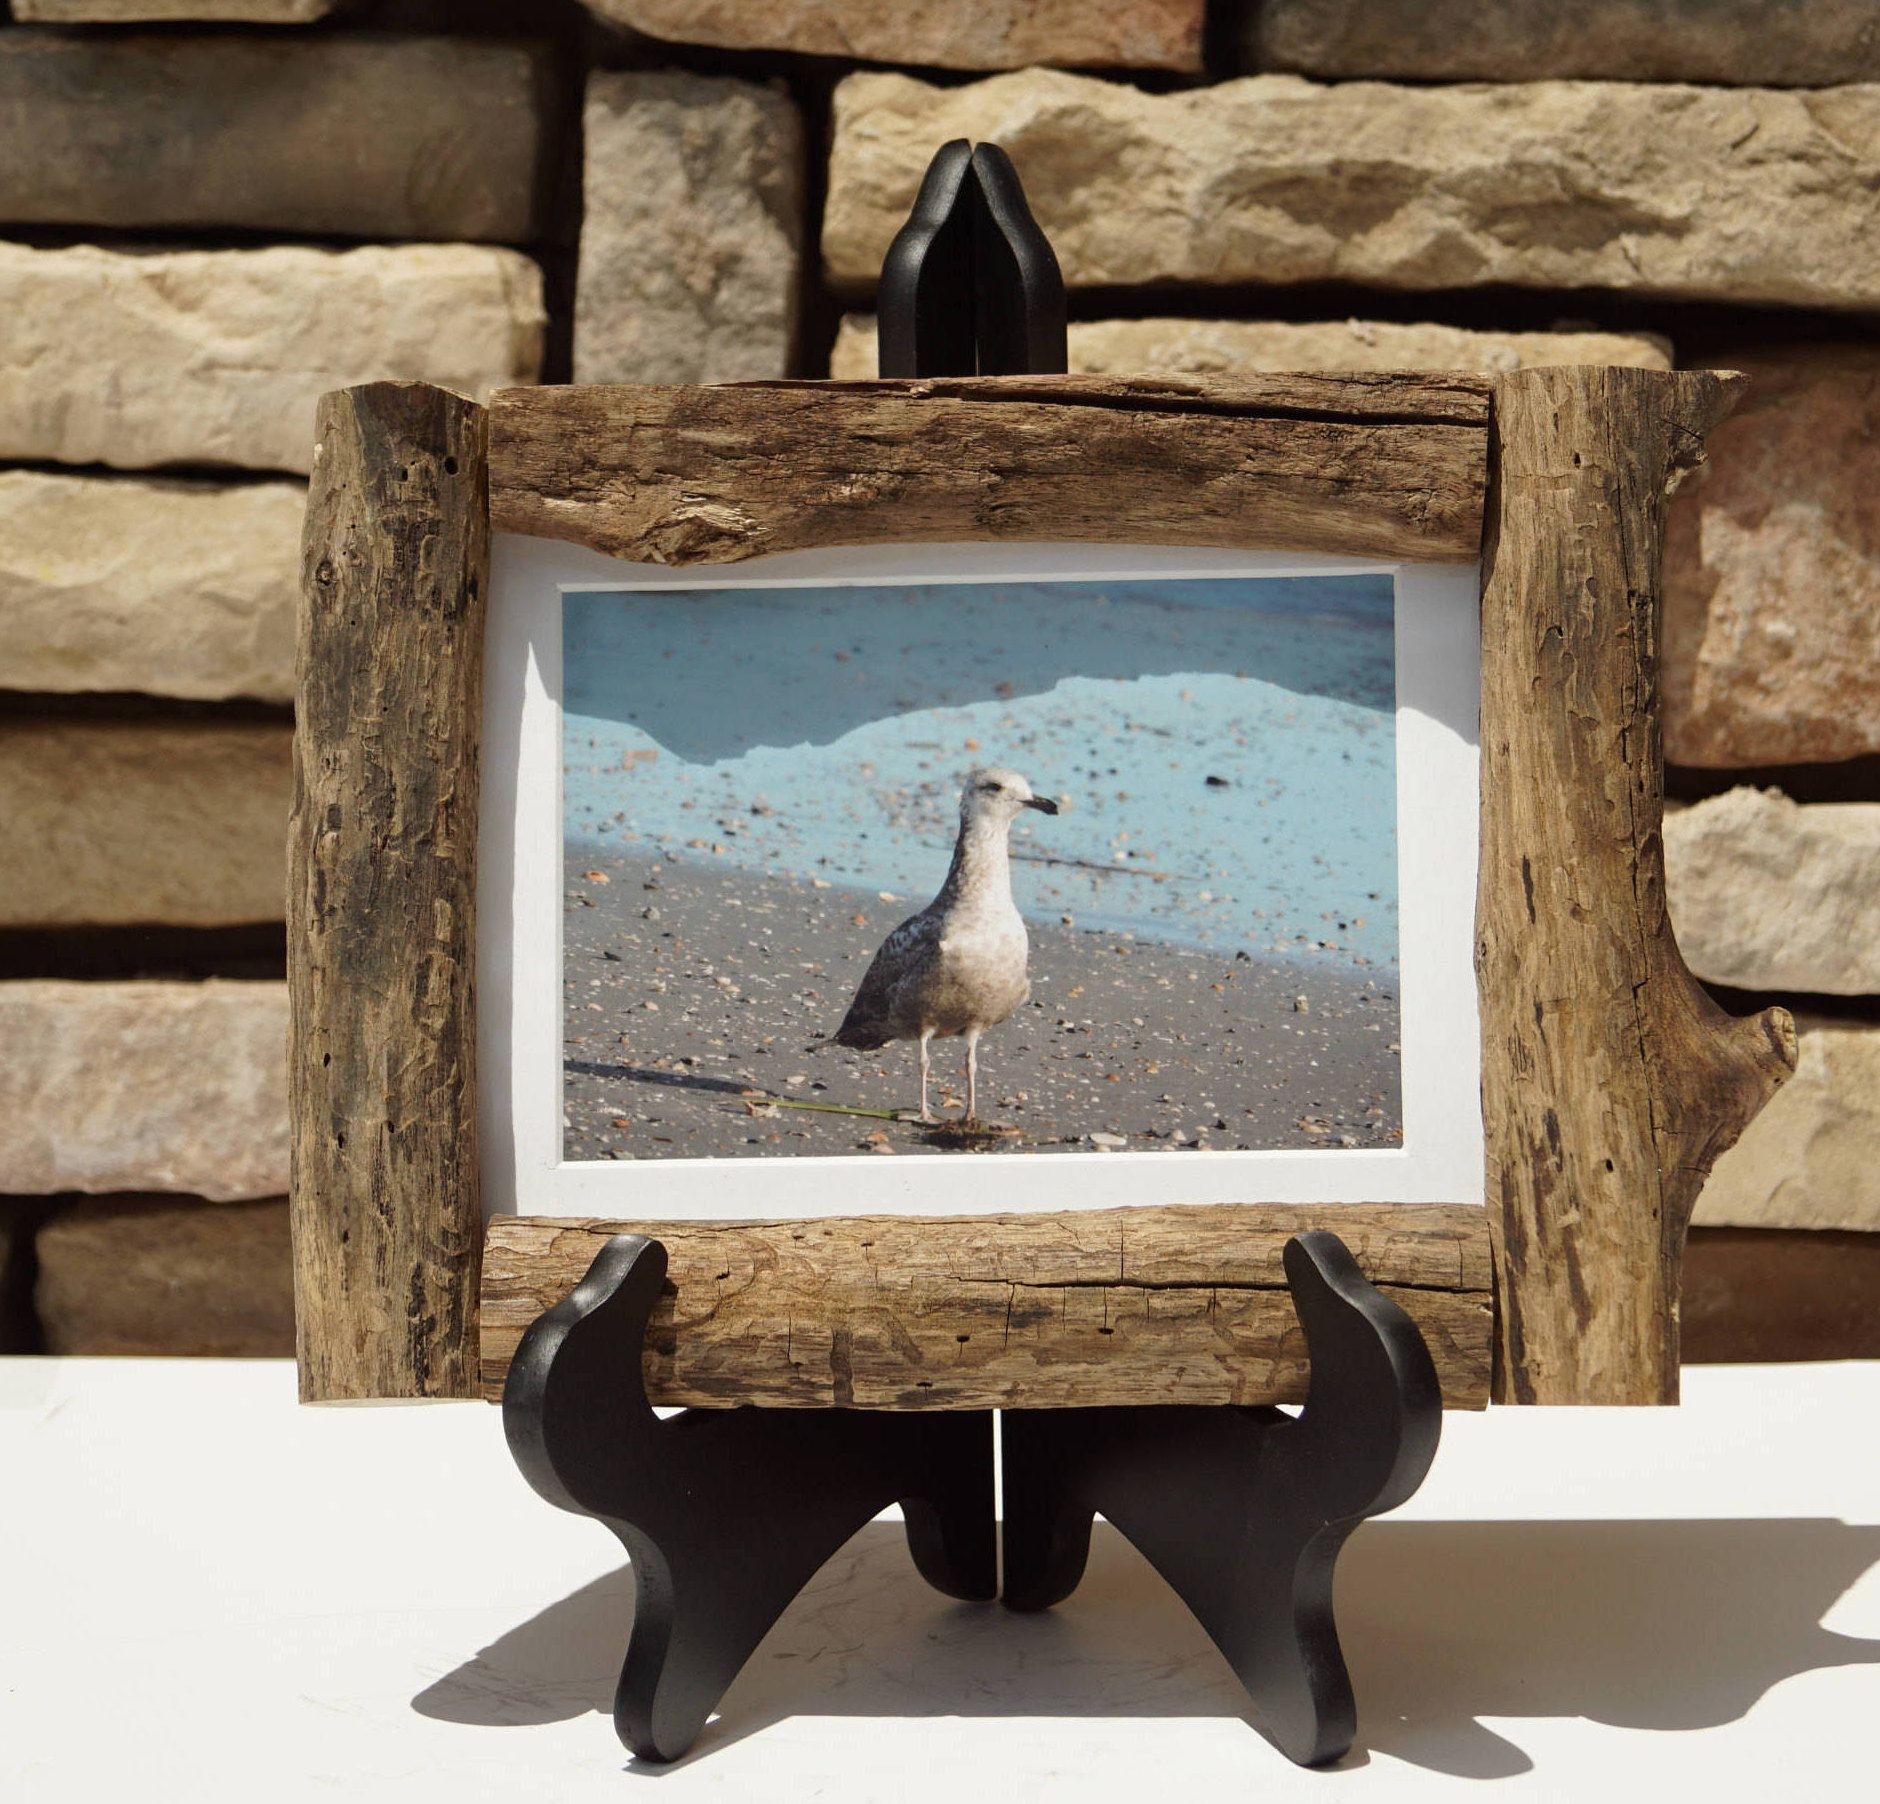 9x6 No Worries - Wonderful Seagull Photo in Handcrafted Driftwood ...